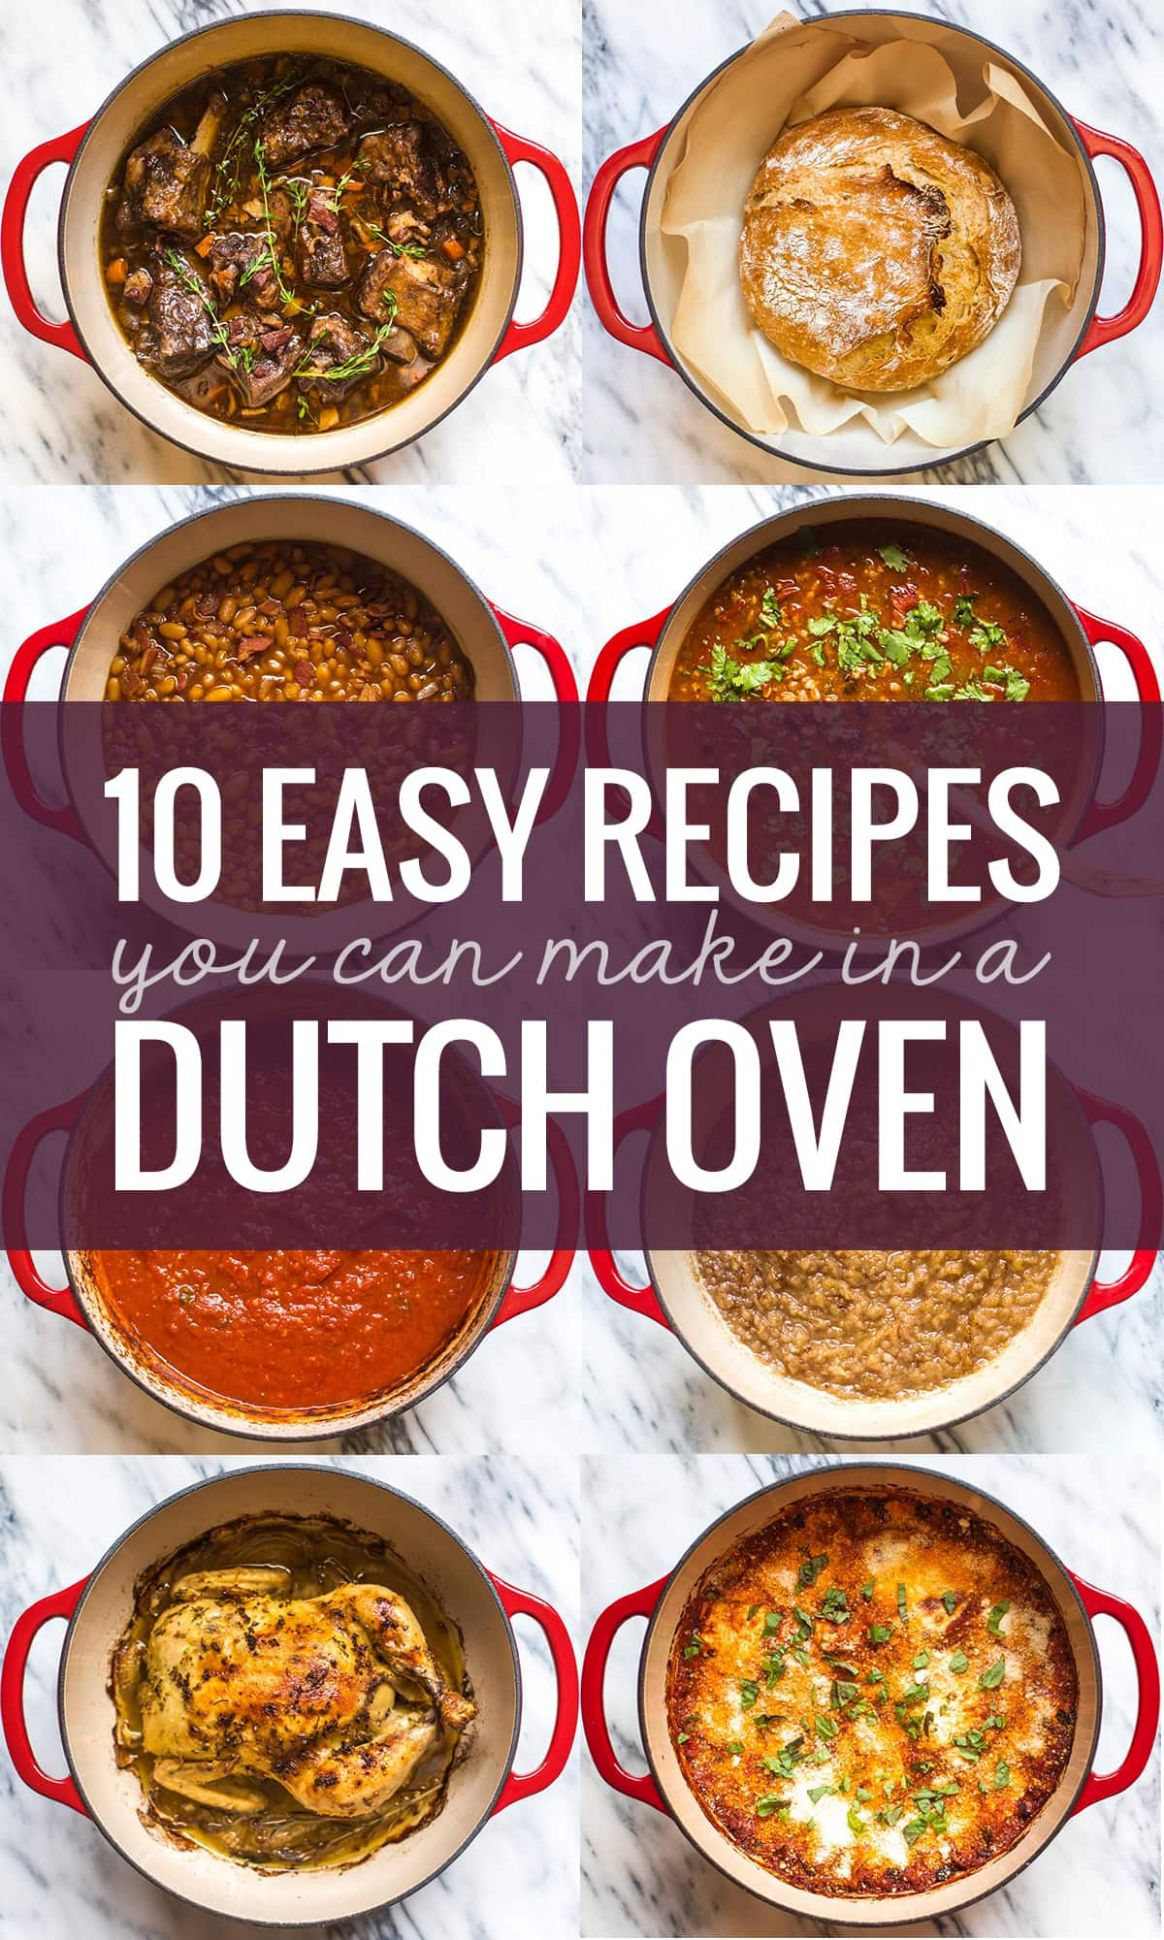 8 Easy Recipes You Can Make in a Dutch Oven - Pinch of Yum